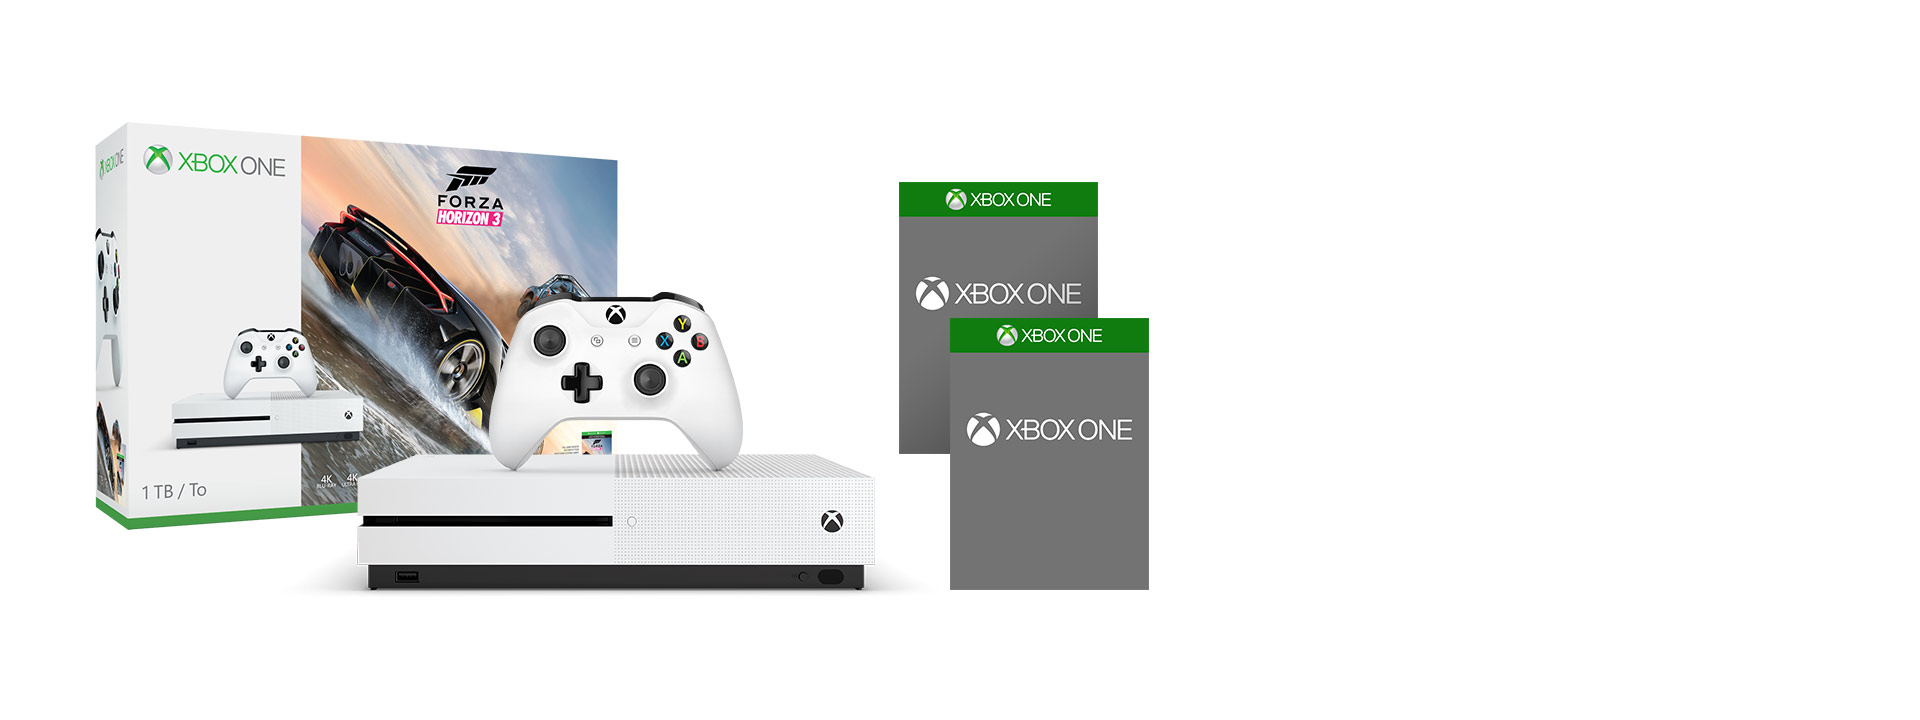 Xbox One S with Forza Horizon 3 and another game - BCGG